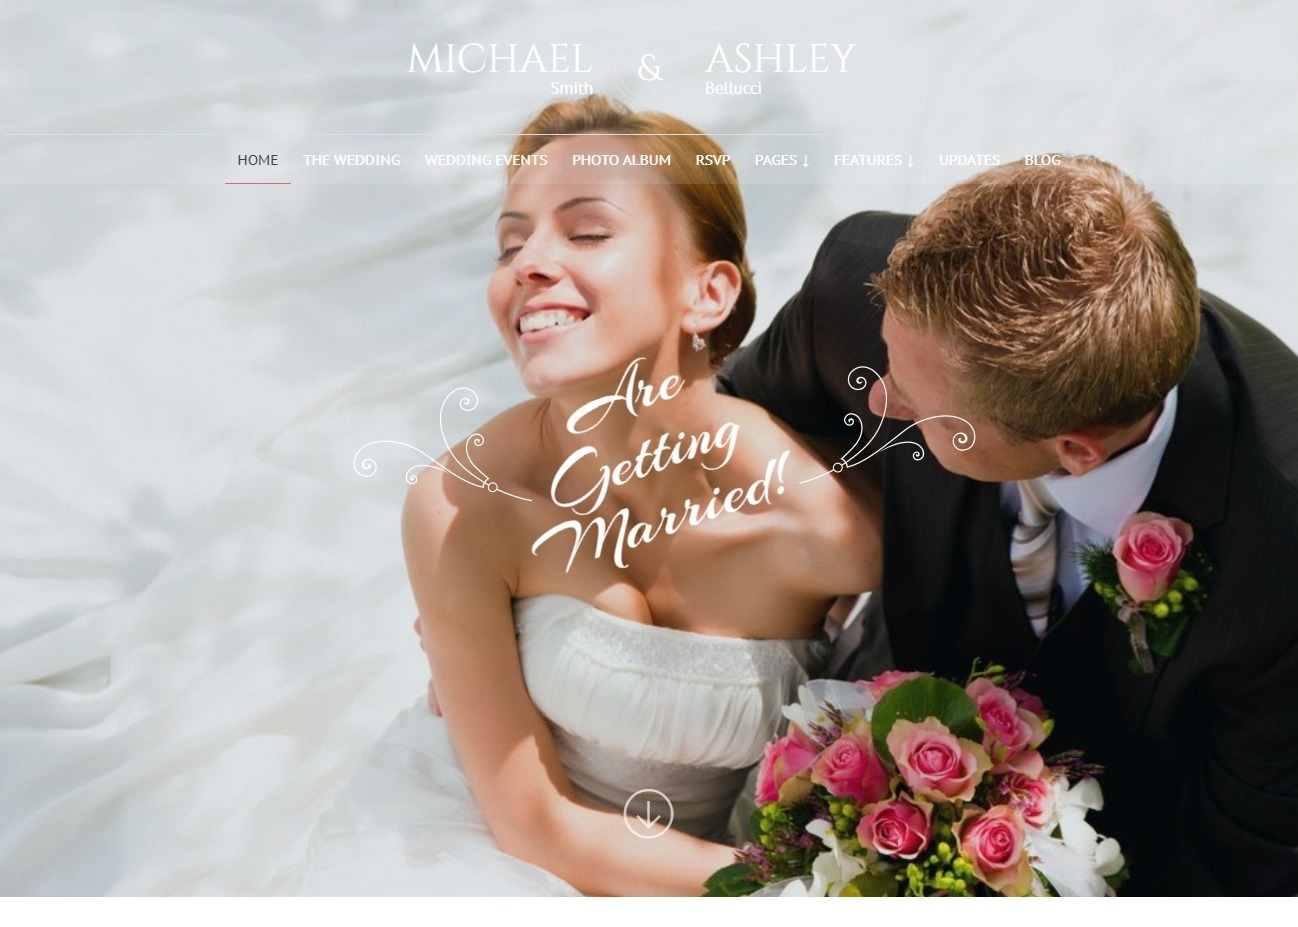 Honeymoon Wedding Planner WordPress Theme